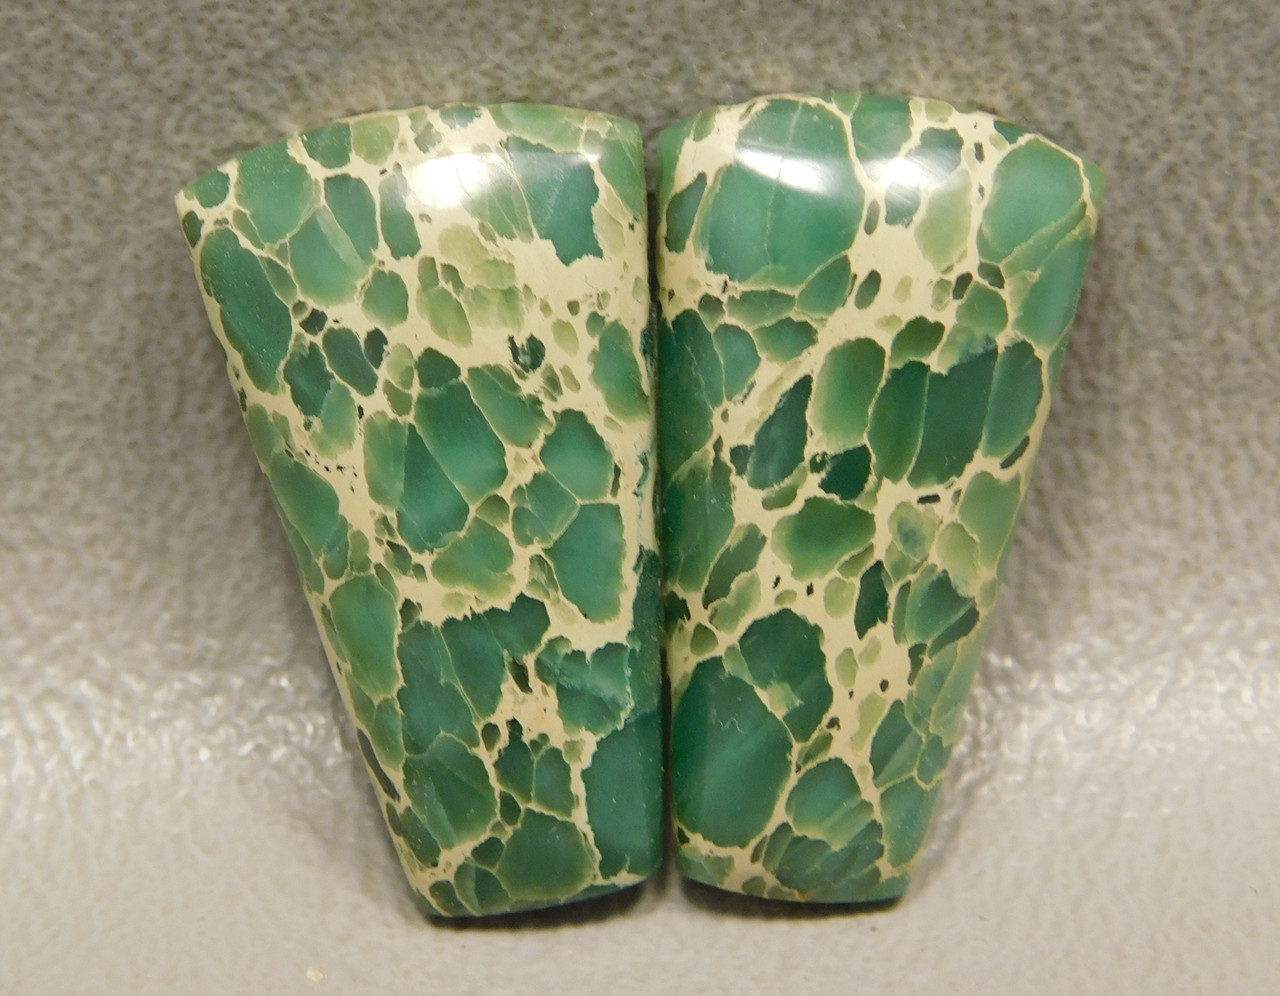 Web Variscite Matched Pair Cabochon Stones for Jewelry Making #4